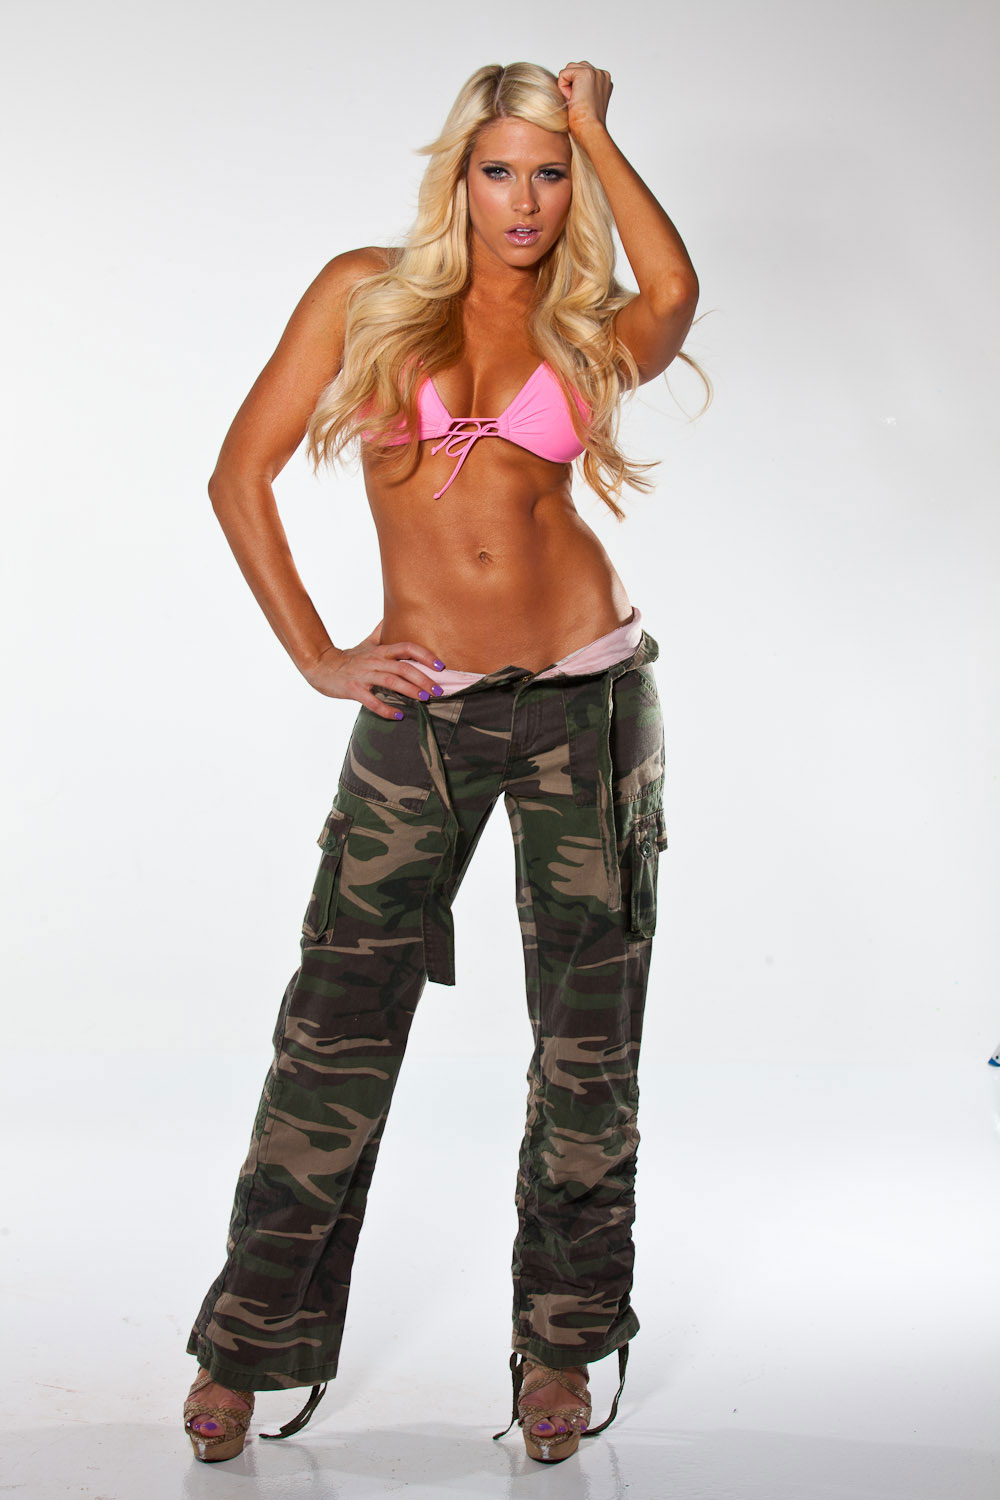 Kelly Kelly In Pink Bikini Top And Combats Pants HawtCelebs